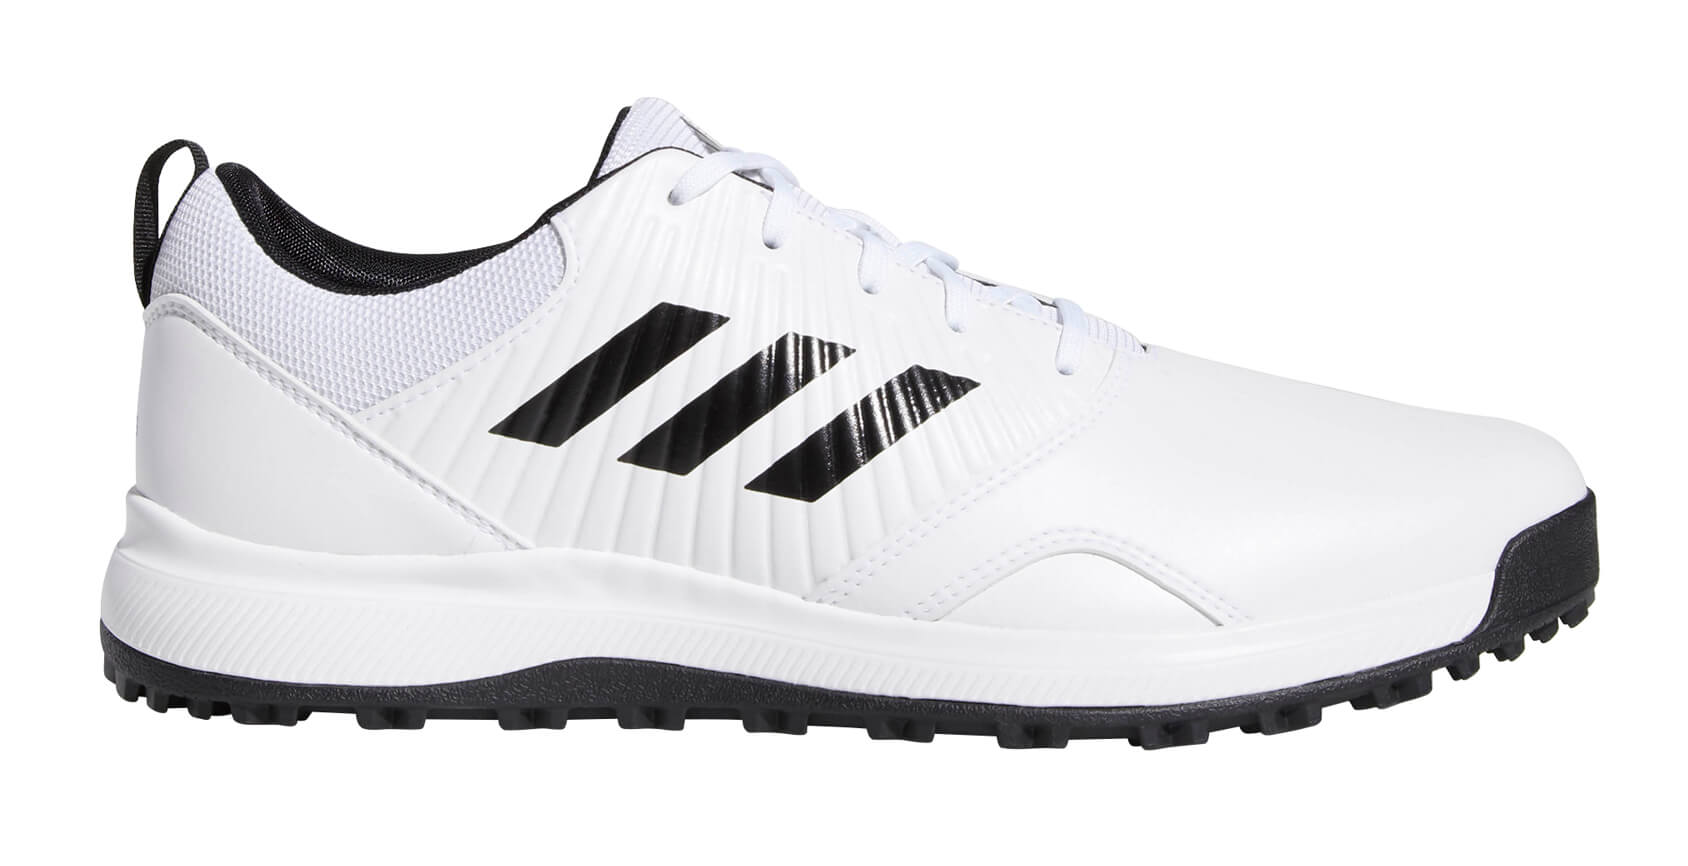 b42d063507080 Details about Adidas CP Traxion SL Golf Shoes Spikeless White Black Men s  2019 New